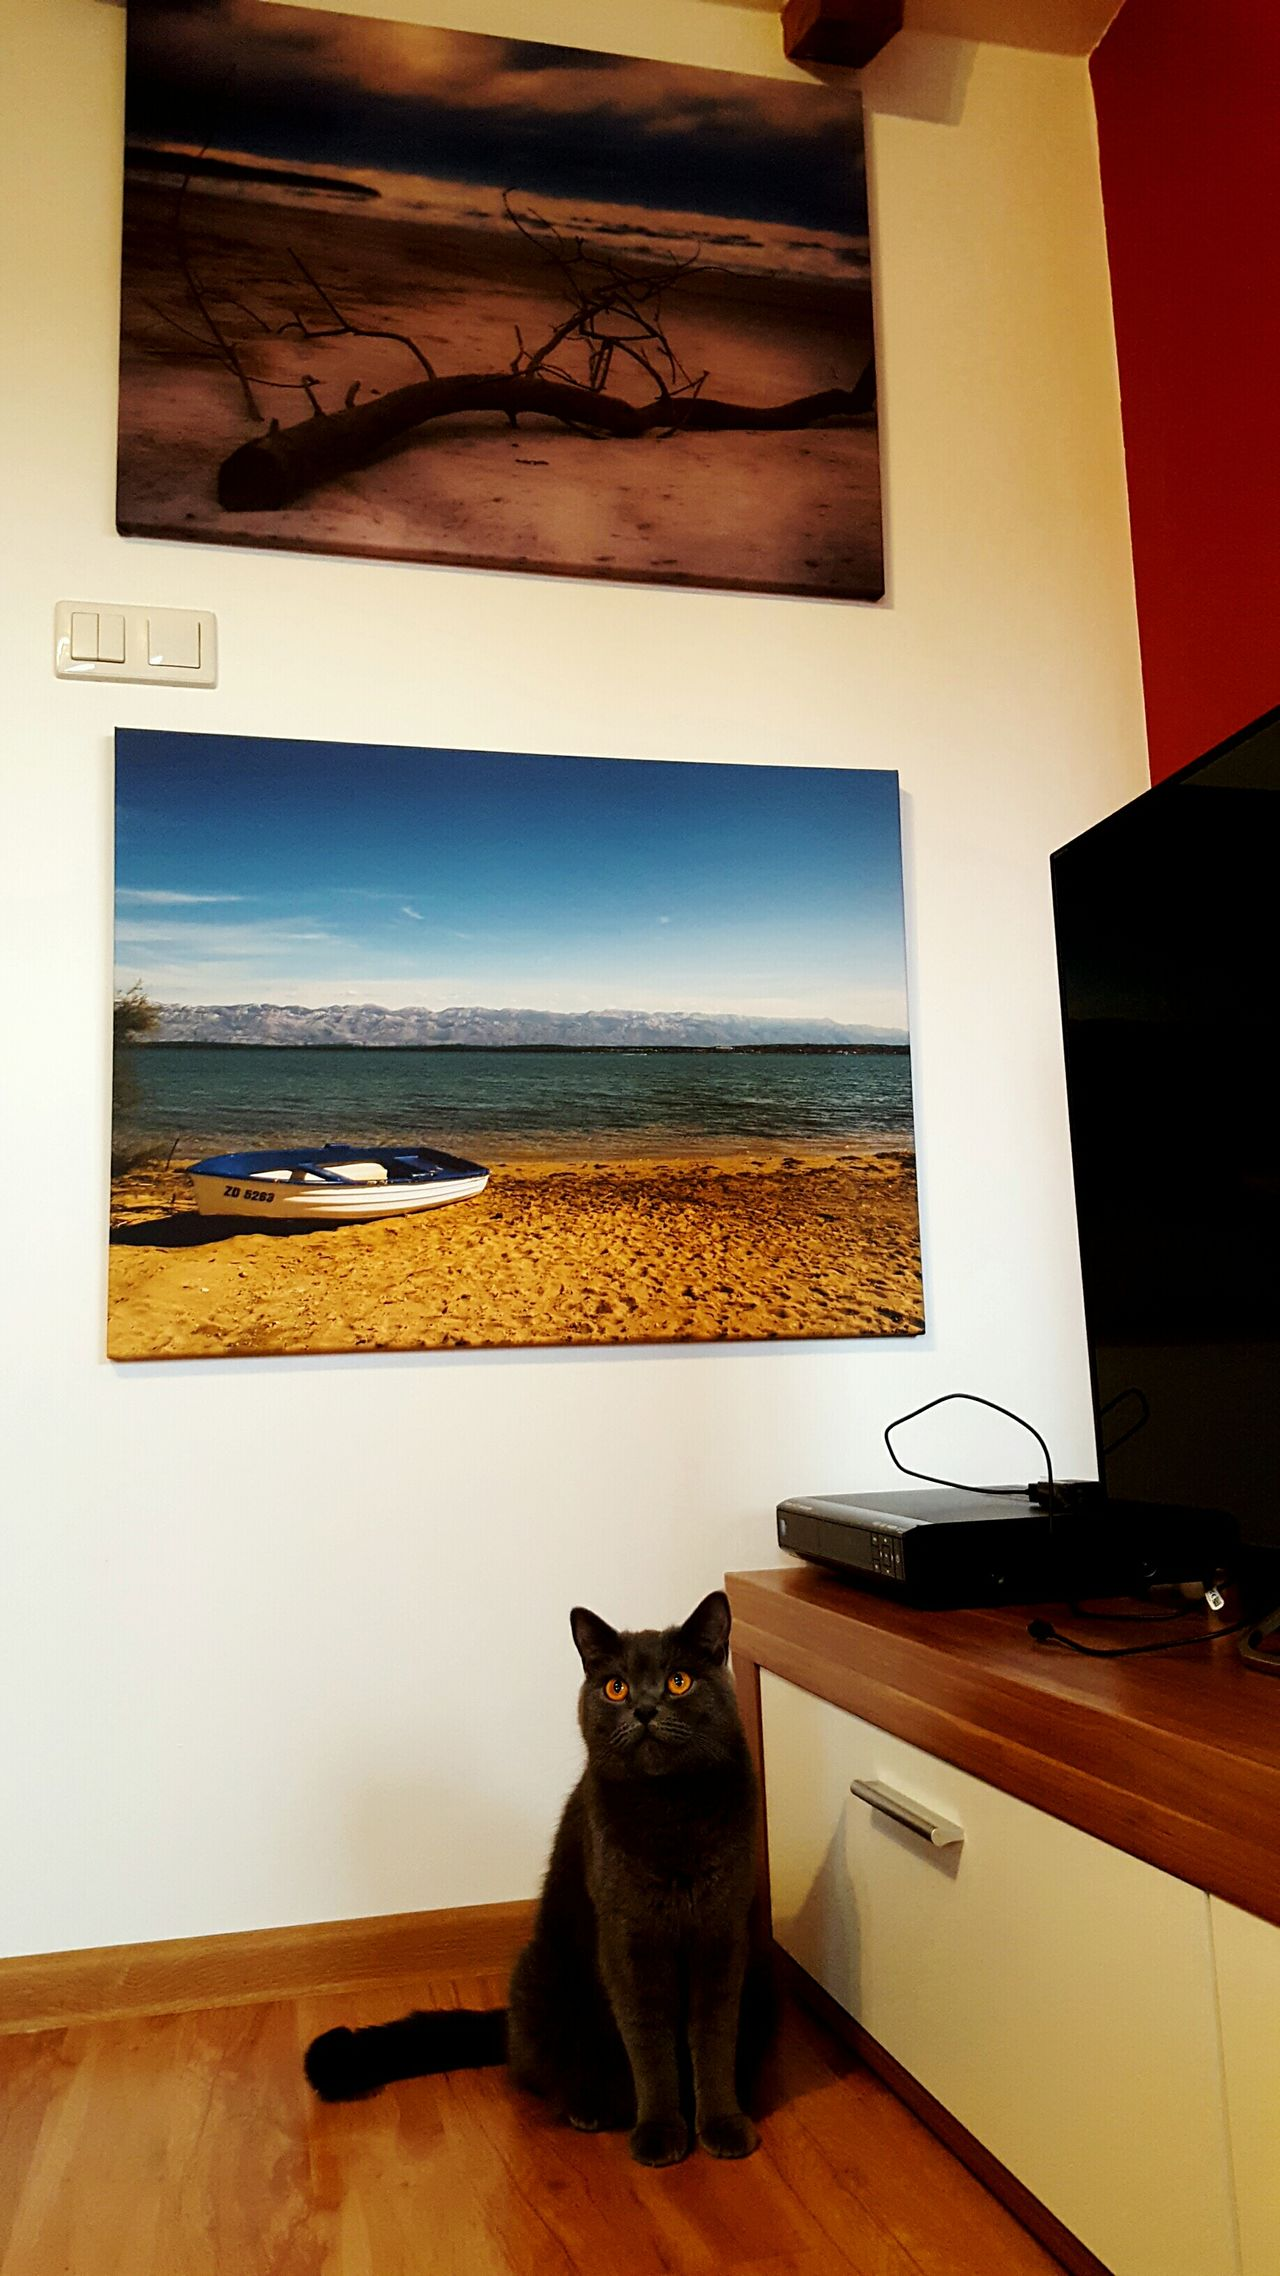 Home Is Where The Art Is Art Design Art Decor Animal Themes Animals EyeEm Nature Lover Relaxing No People Decoration My Cat British Shorthair British Cat Tennessee Home Home Sweet Home Flatmate Watching Watching You Wall Art Wall Interrior Views Trophy Pivotal Ideas Friendship Cat Eyes